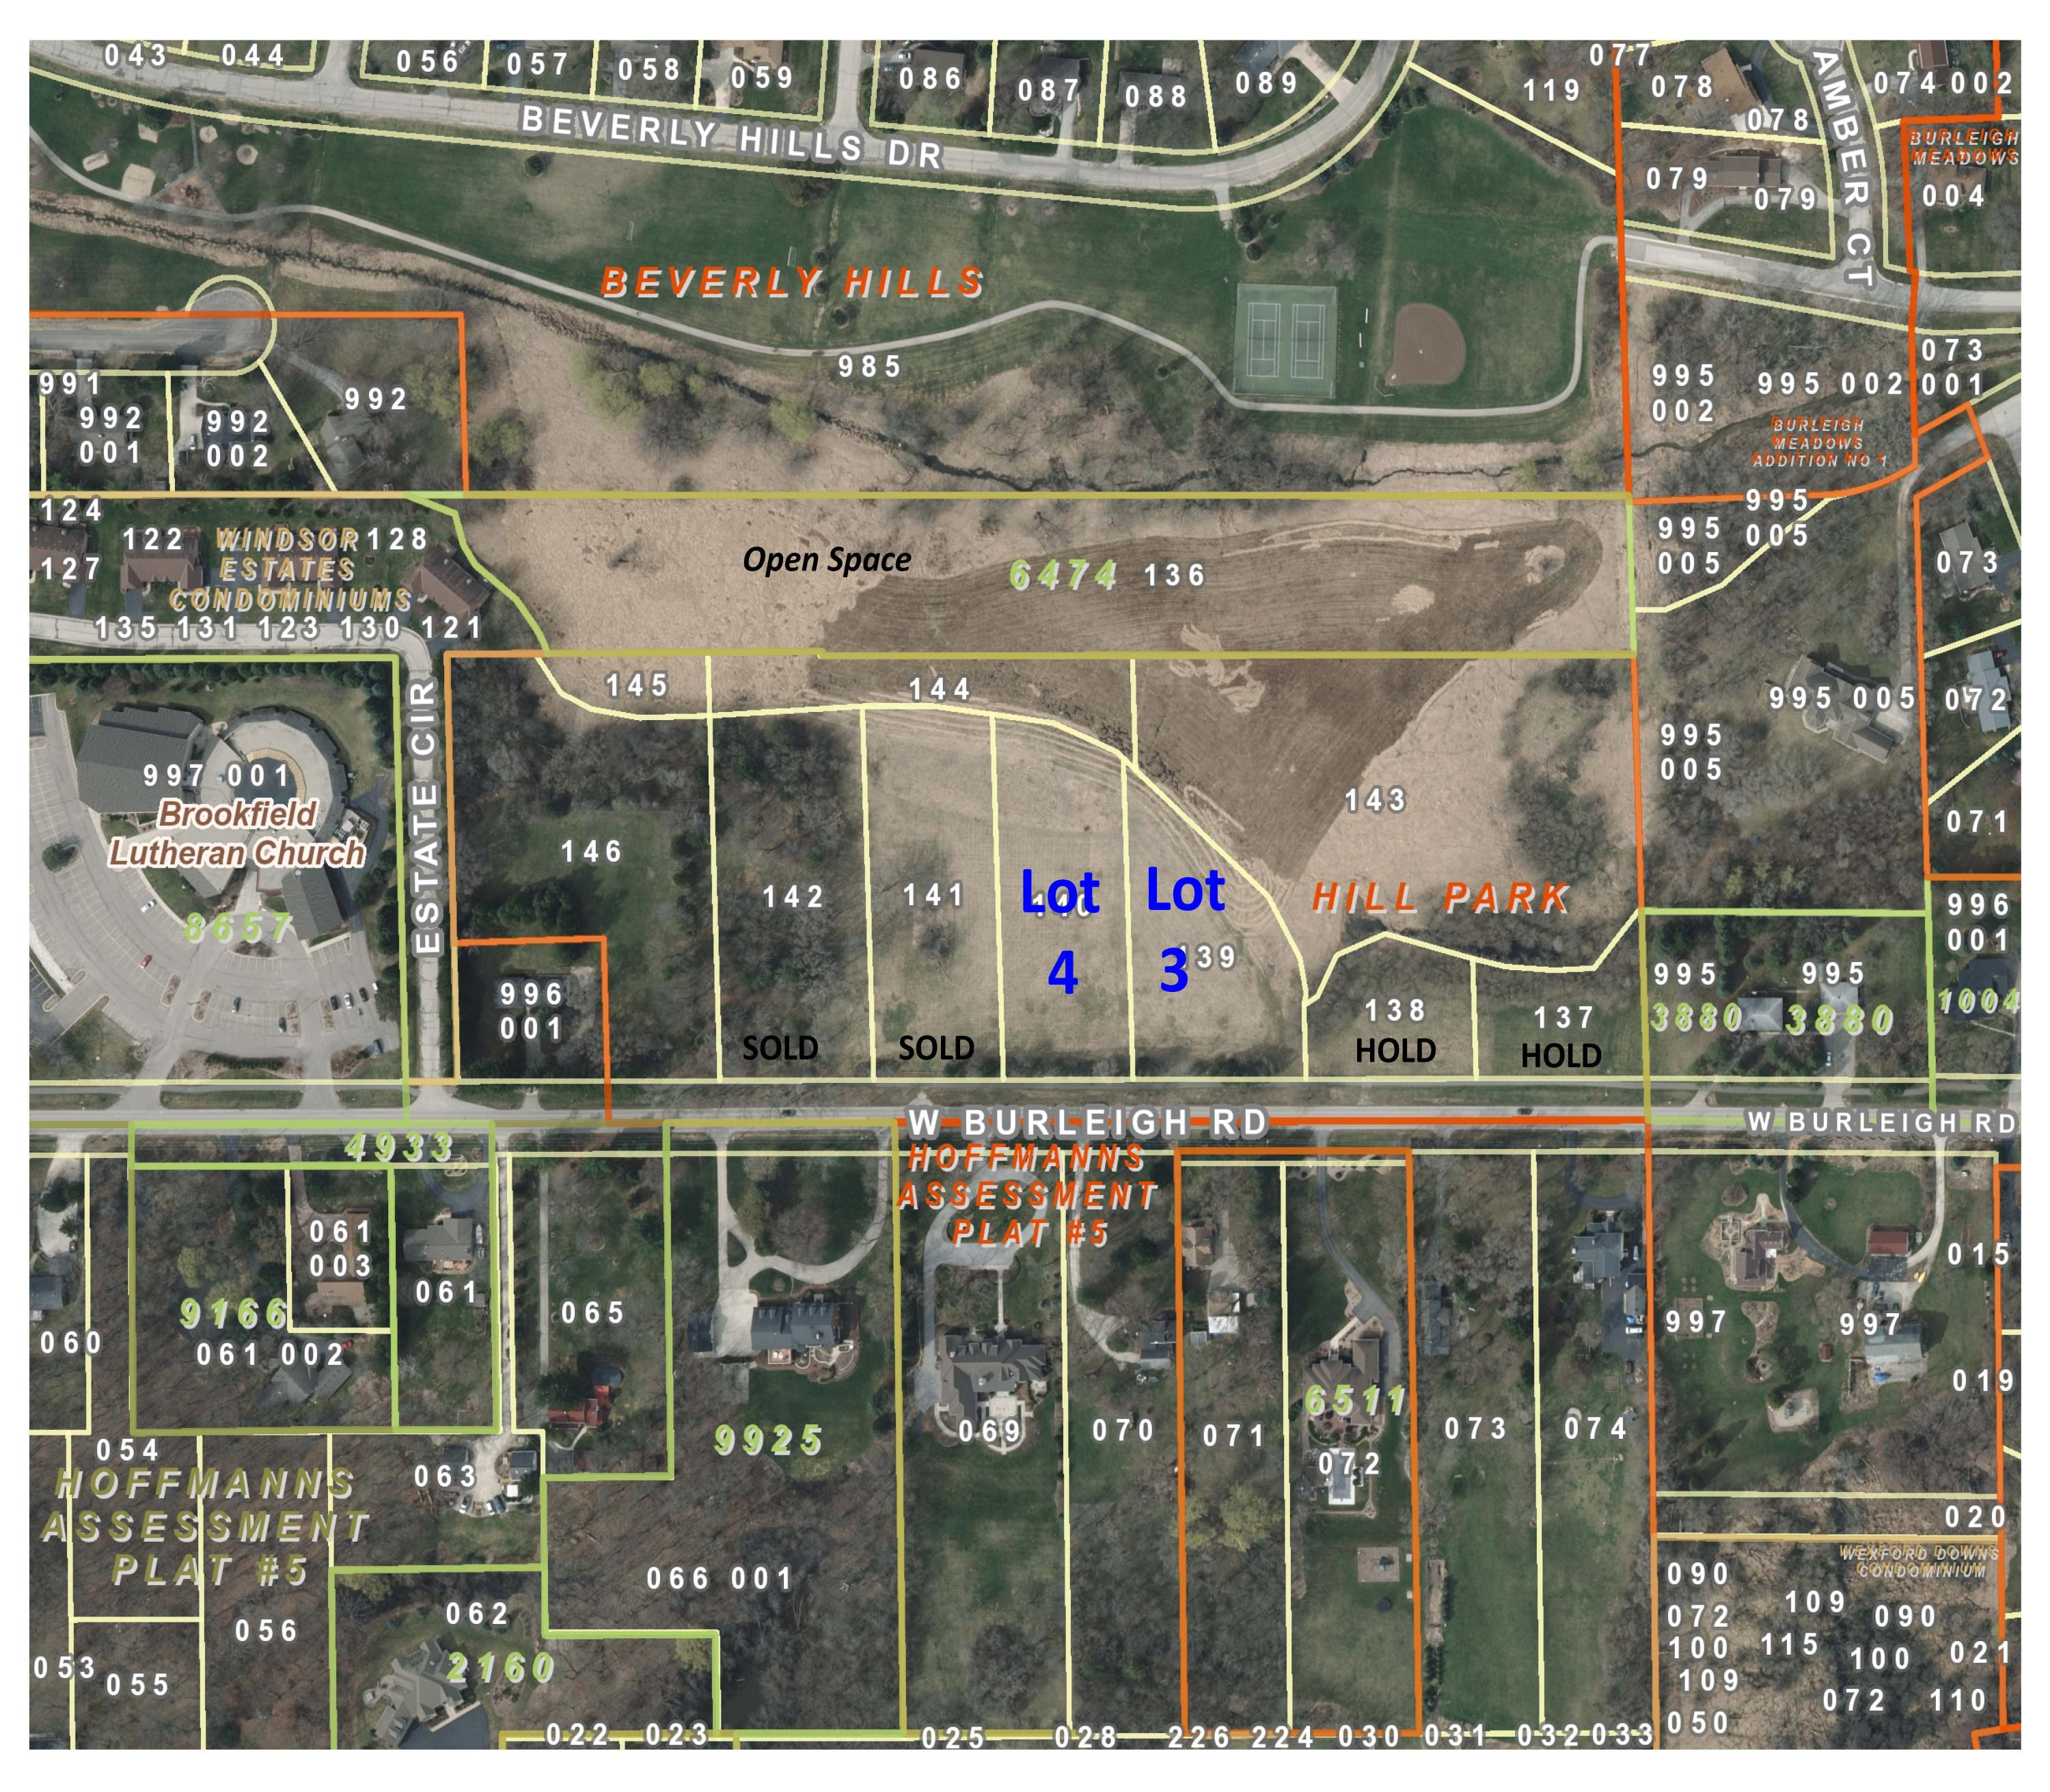 18150 Burleigh Rd, Brookfield, Wisconsin 53045, ,Vacant Land,For Sale,Burleigh Rd,1674630